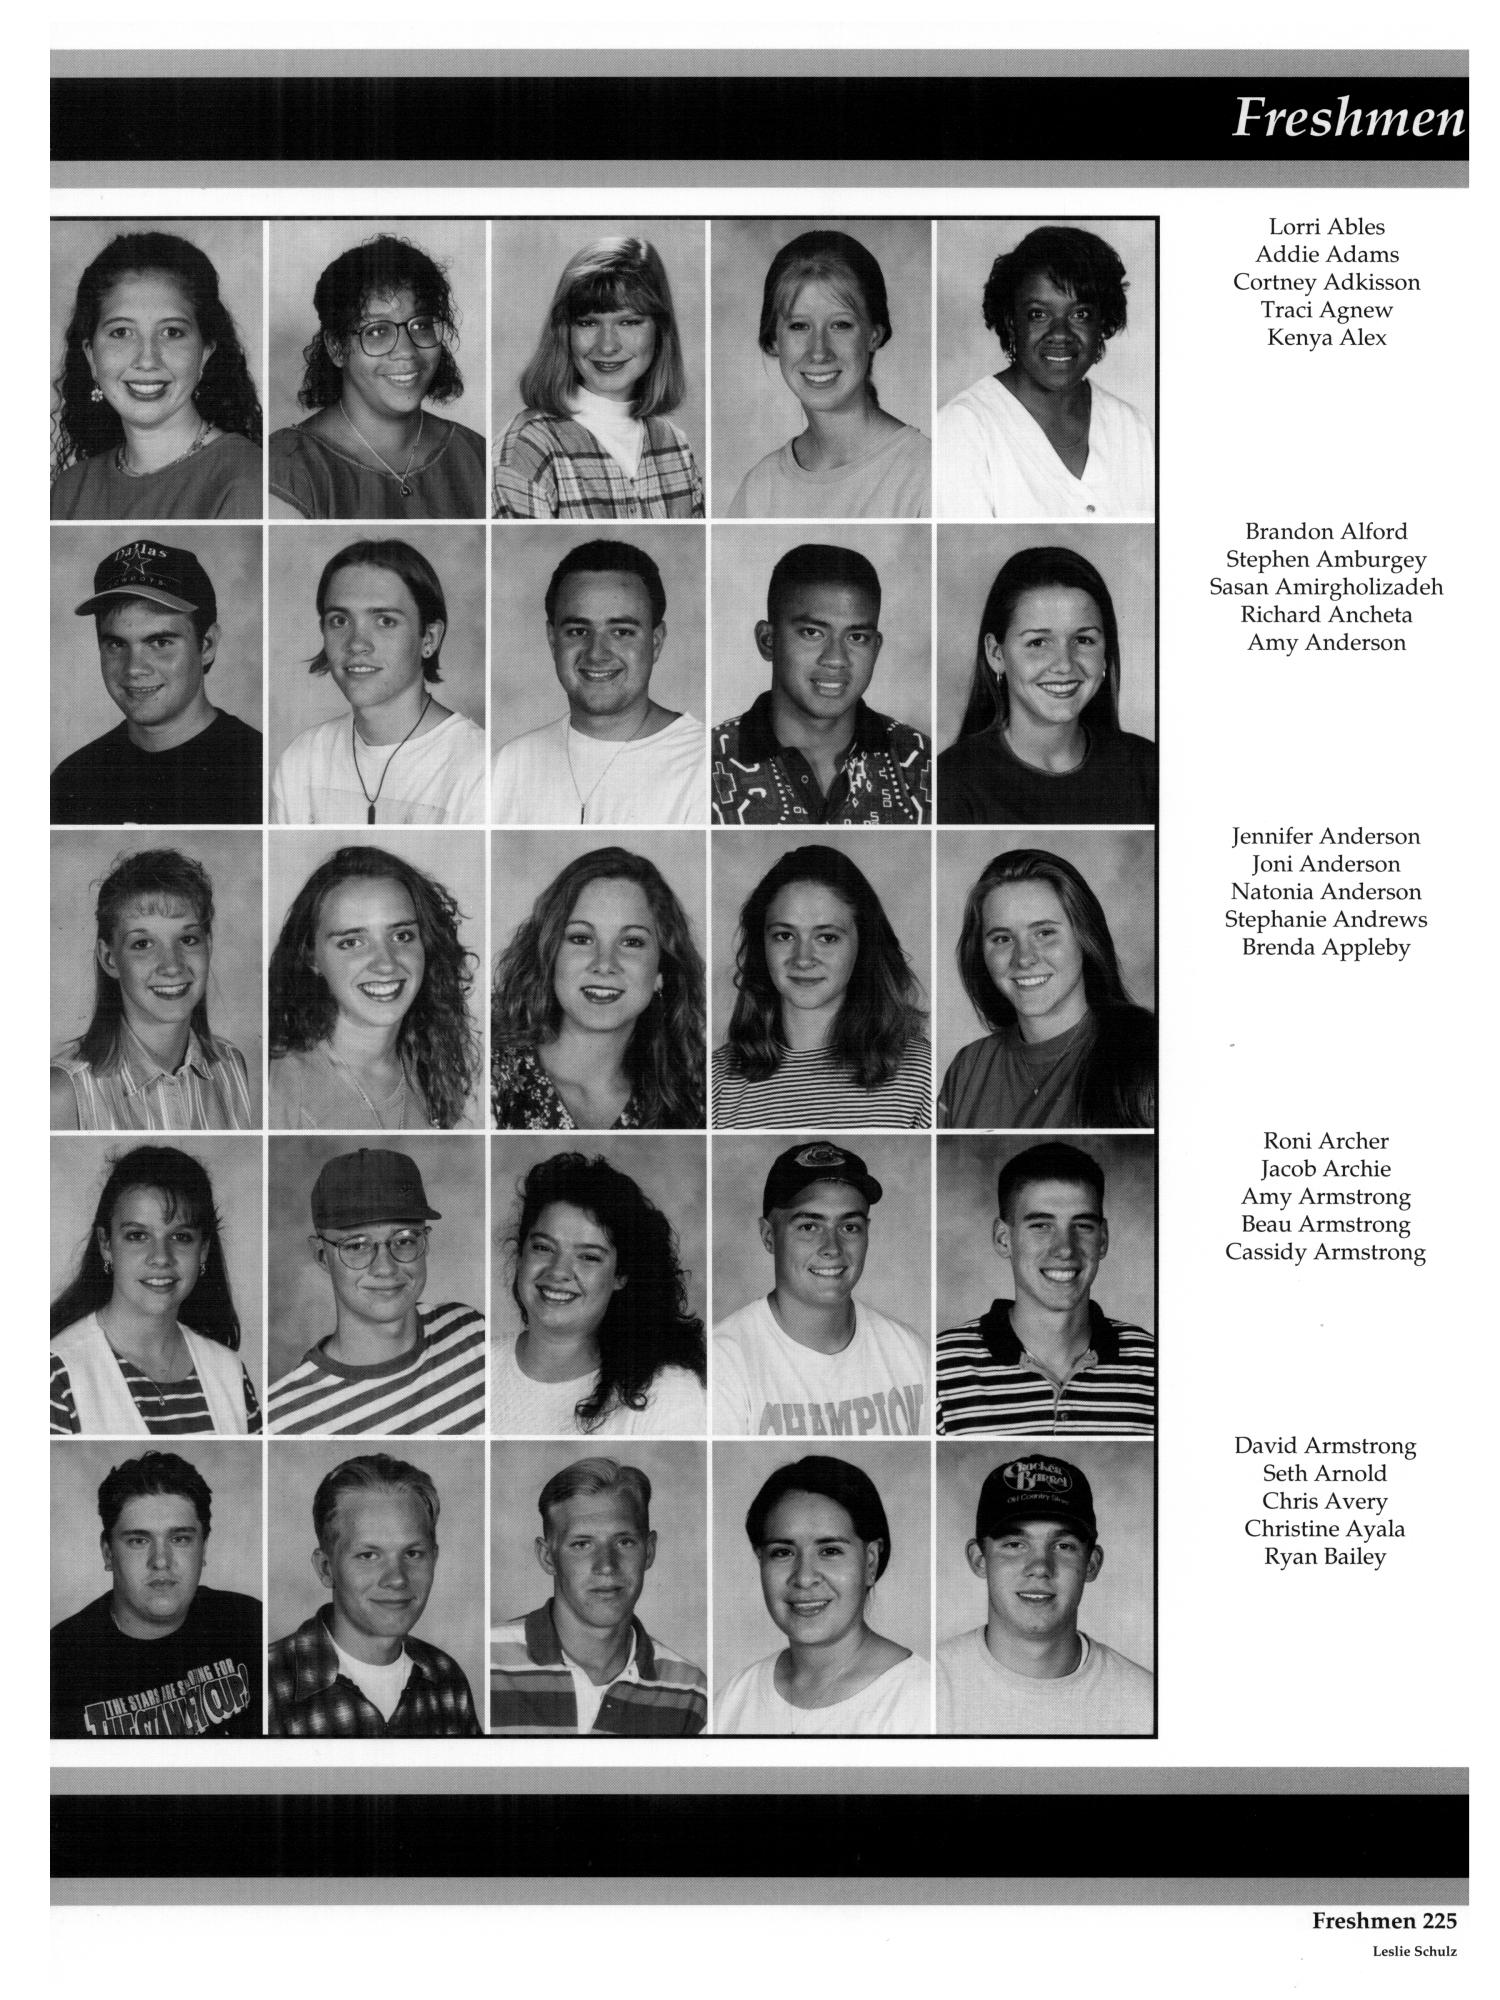 The aerie yearbook of university of north texas 1995 page 44 unt - The Aerie Yearbook Of University Of North Texas 1995 Page 225 Digital Library